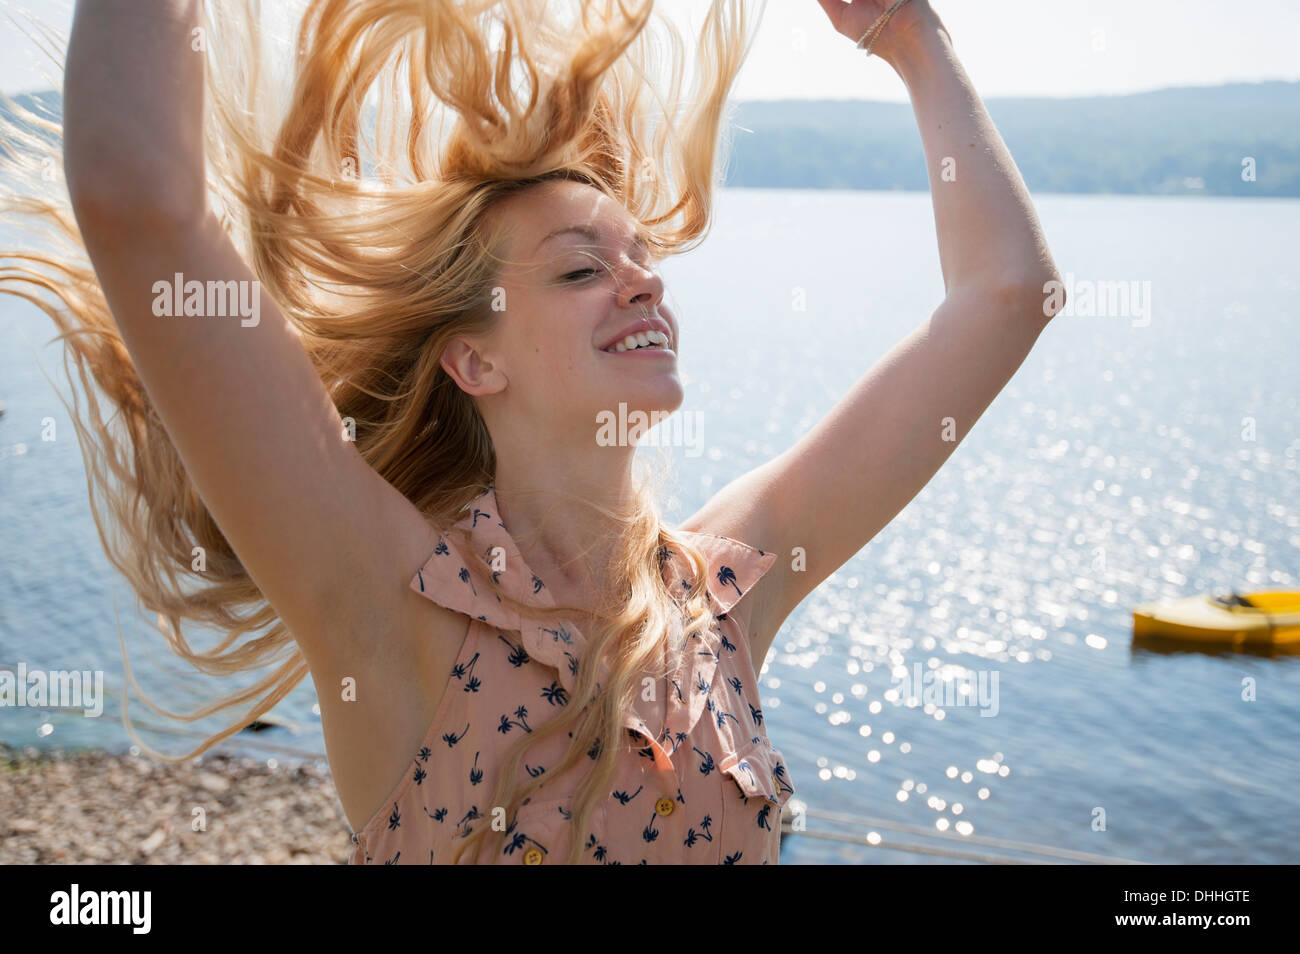 Portrait of young woman with long blonde hair and arms raised - Stock Image